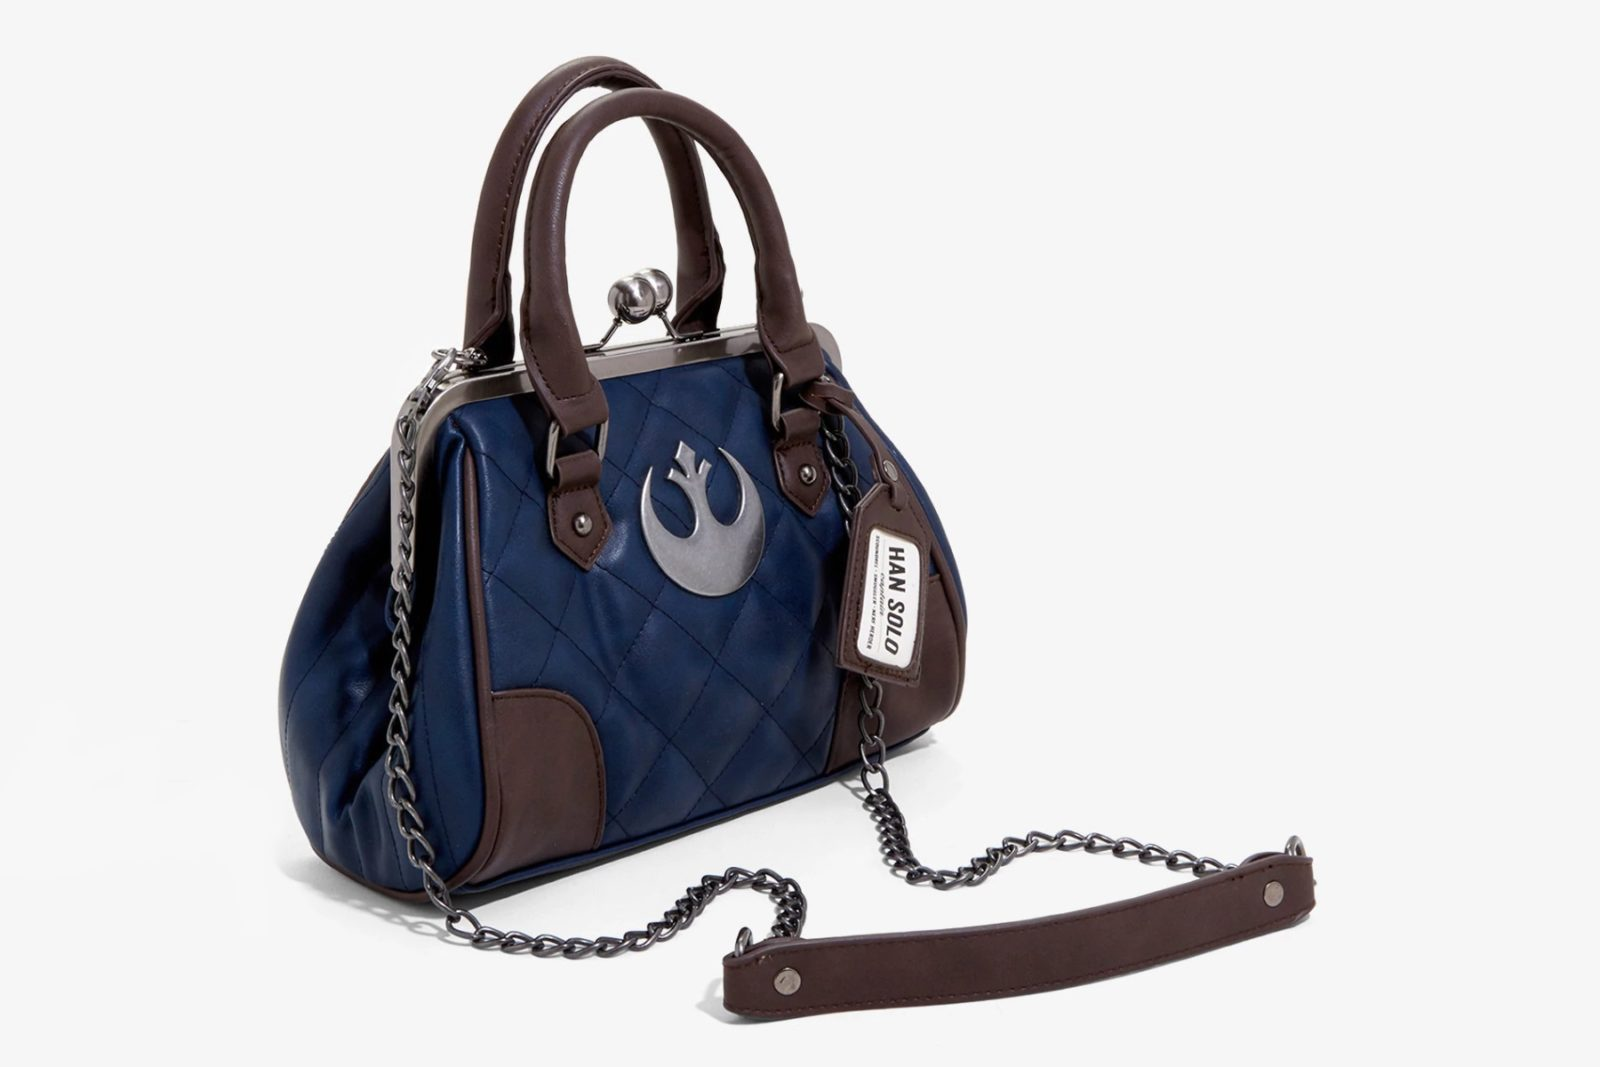 Bioworld Hoth Han Solo Handbag at Hot Topic